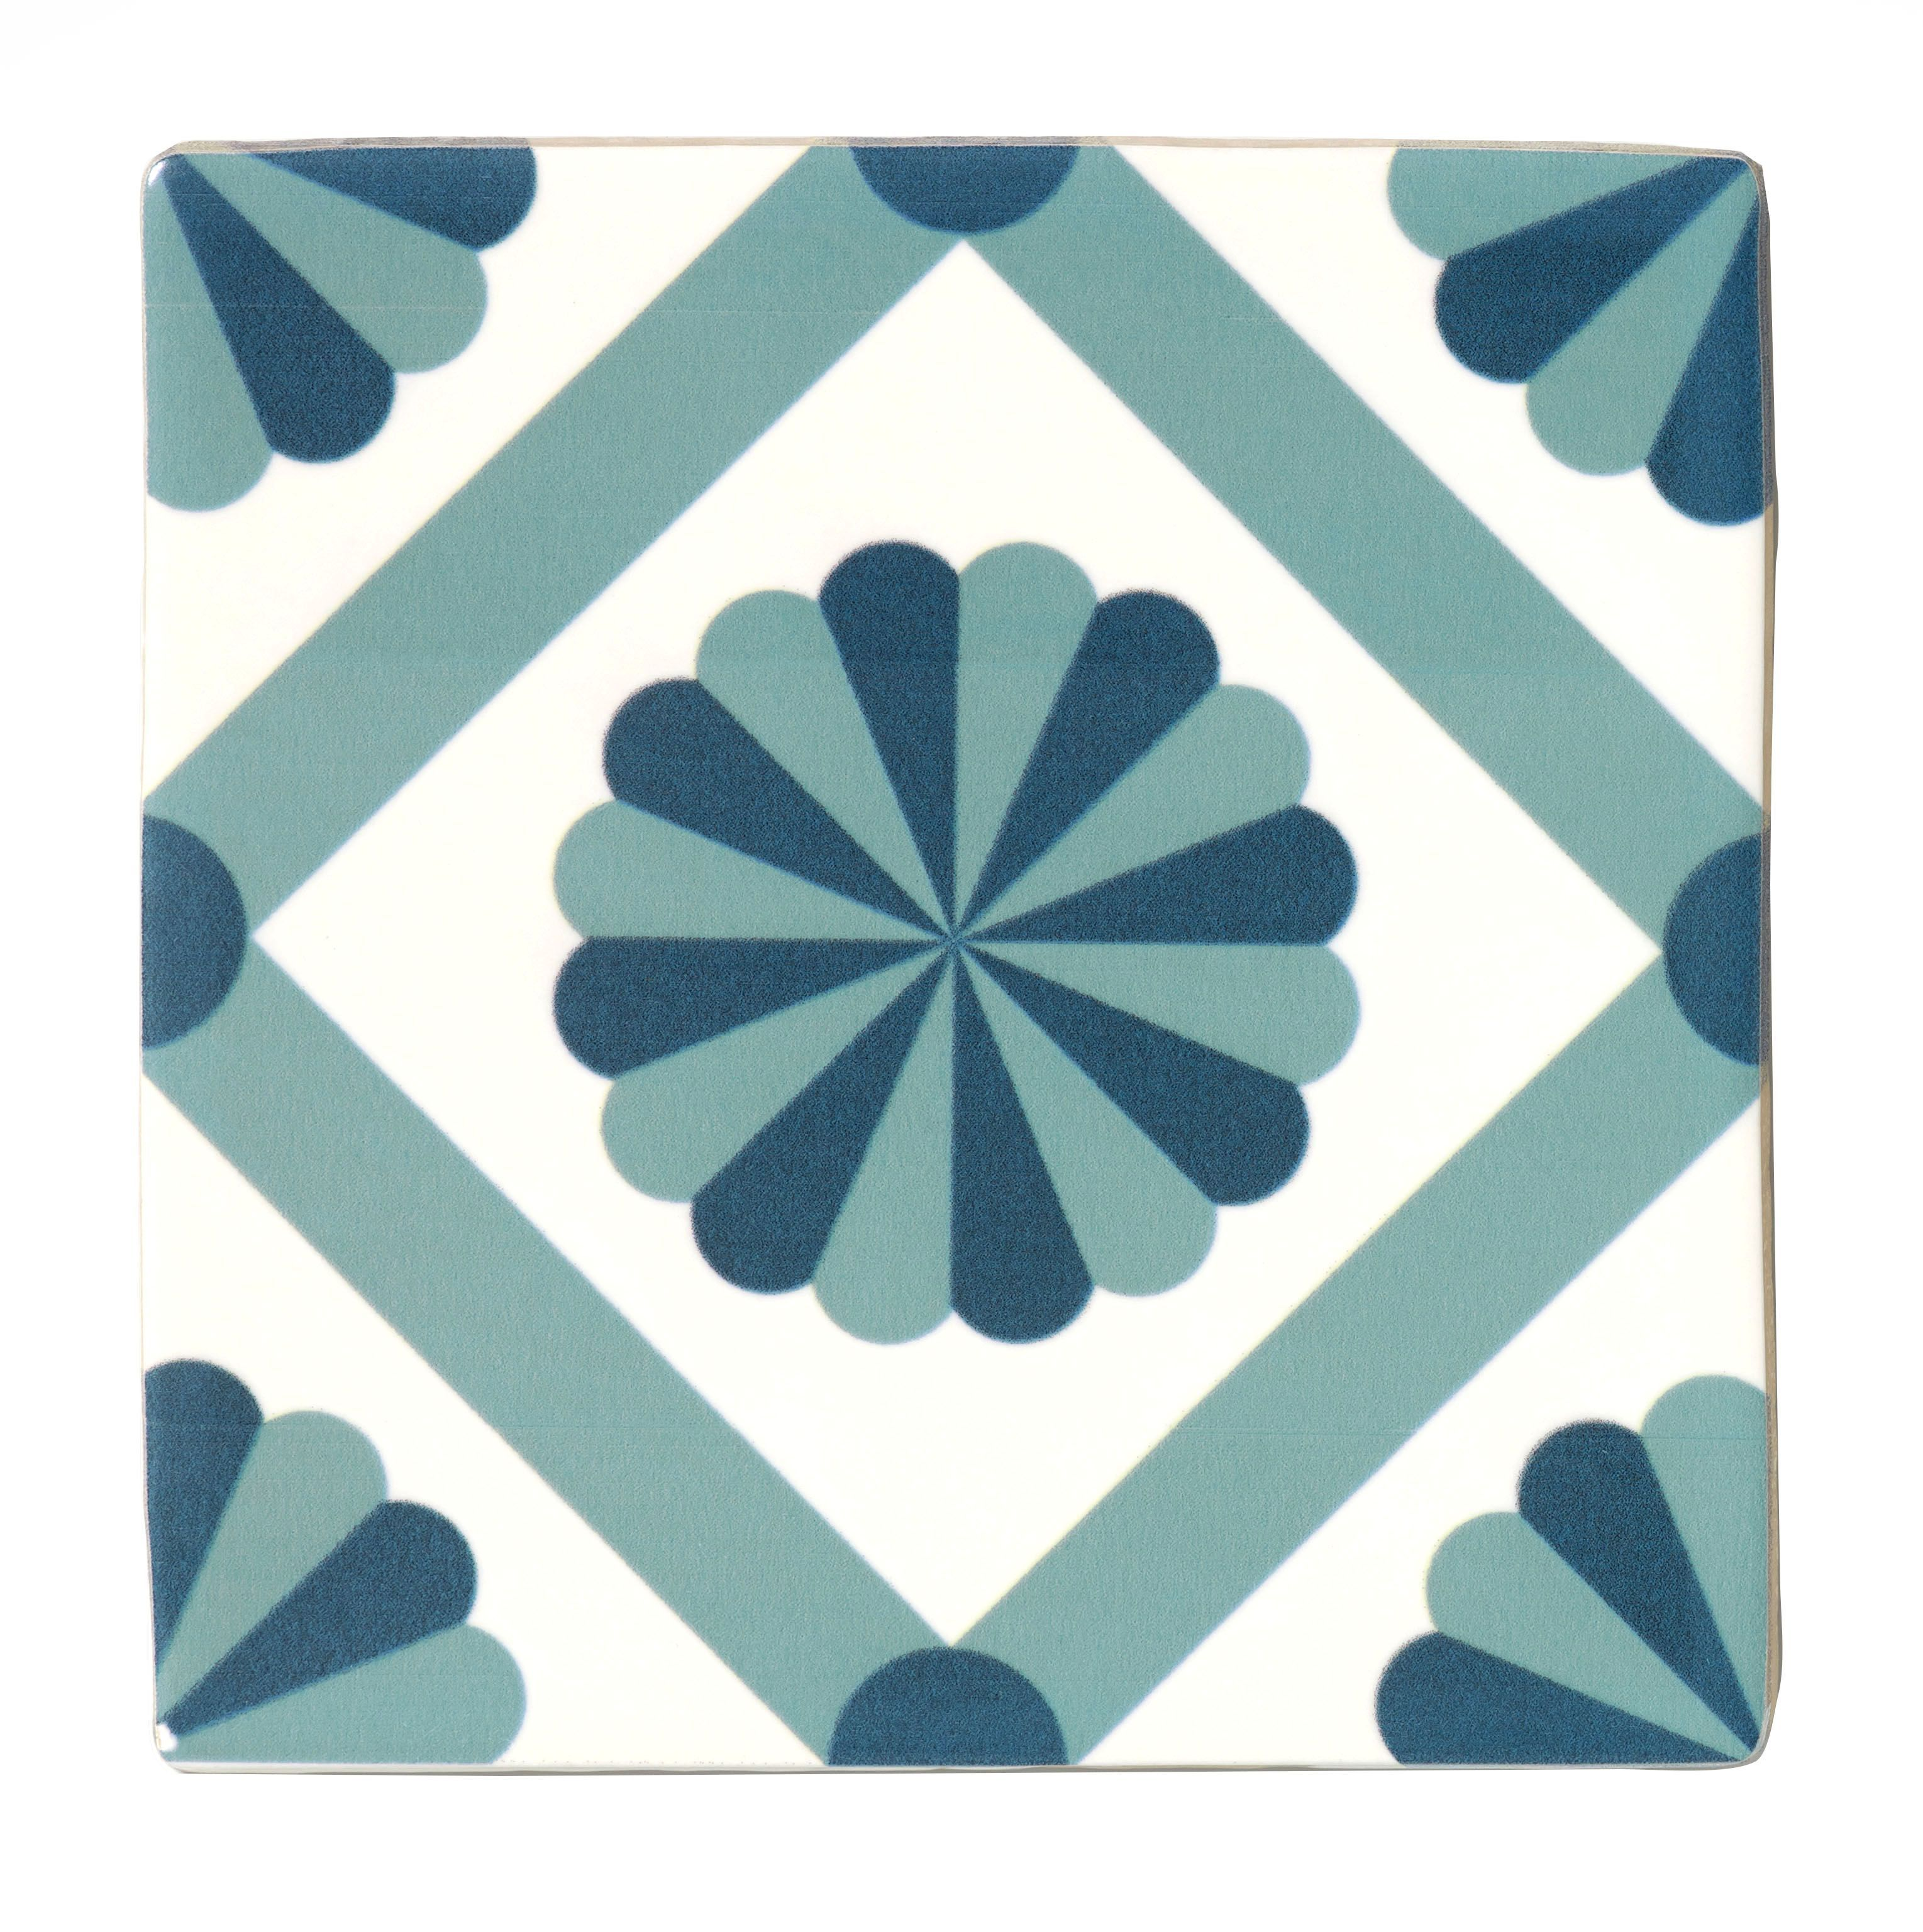 Fusion Blue & White Satin Patterned Ceramic Wall Tile, Pack of 25 ...